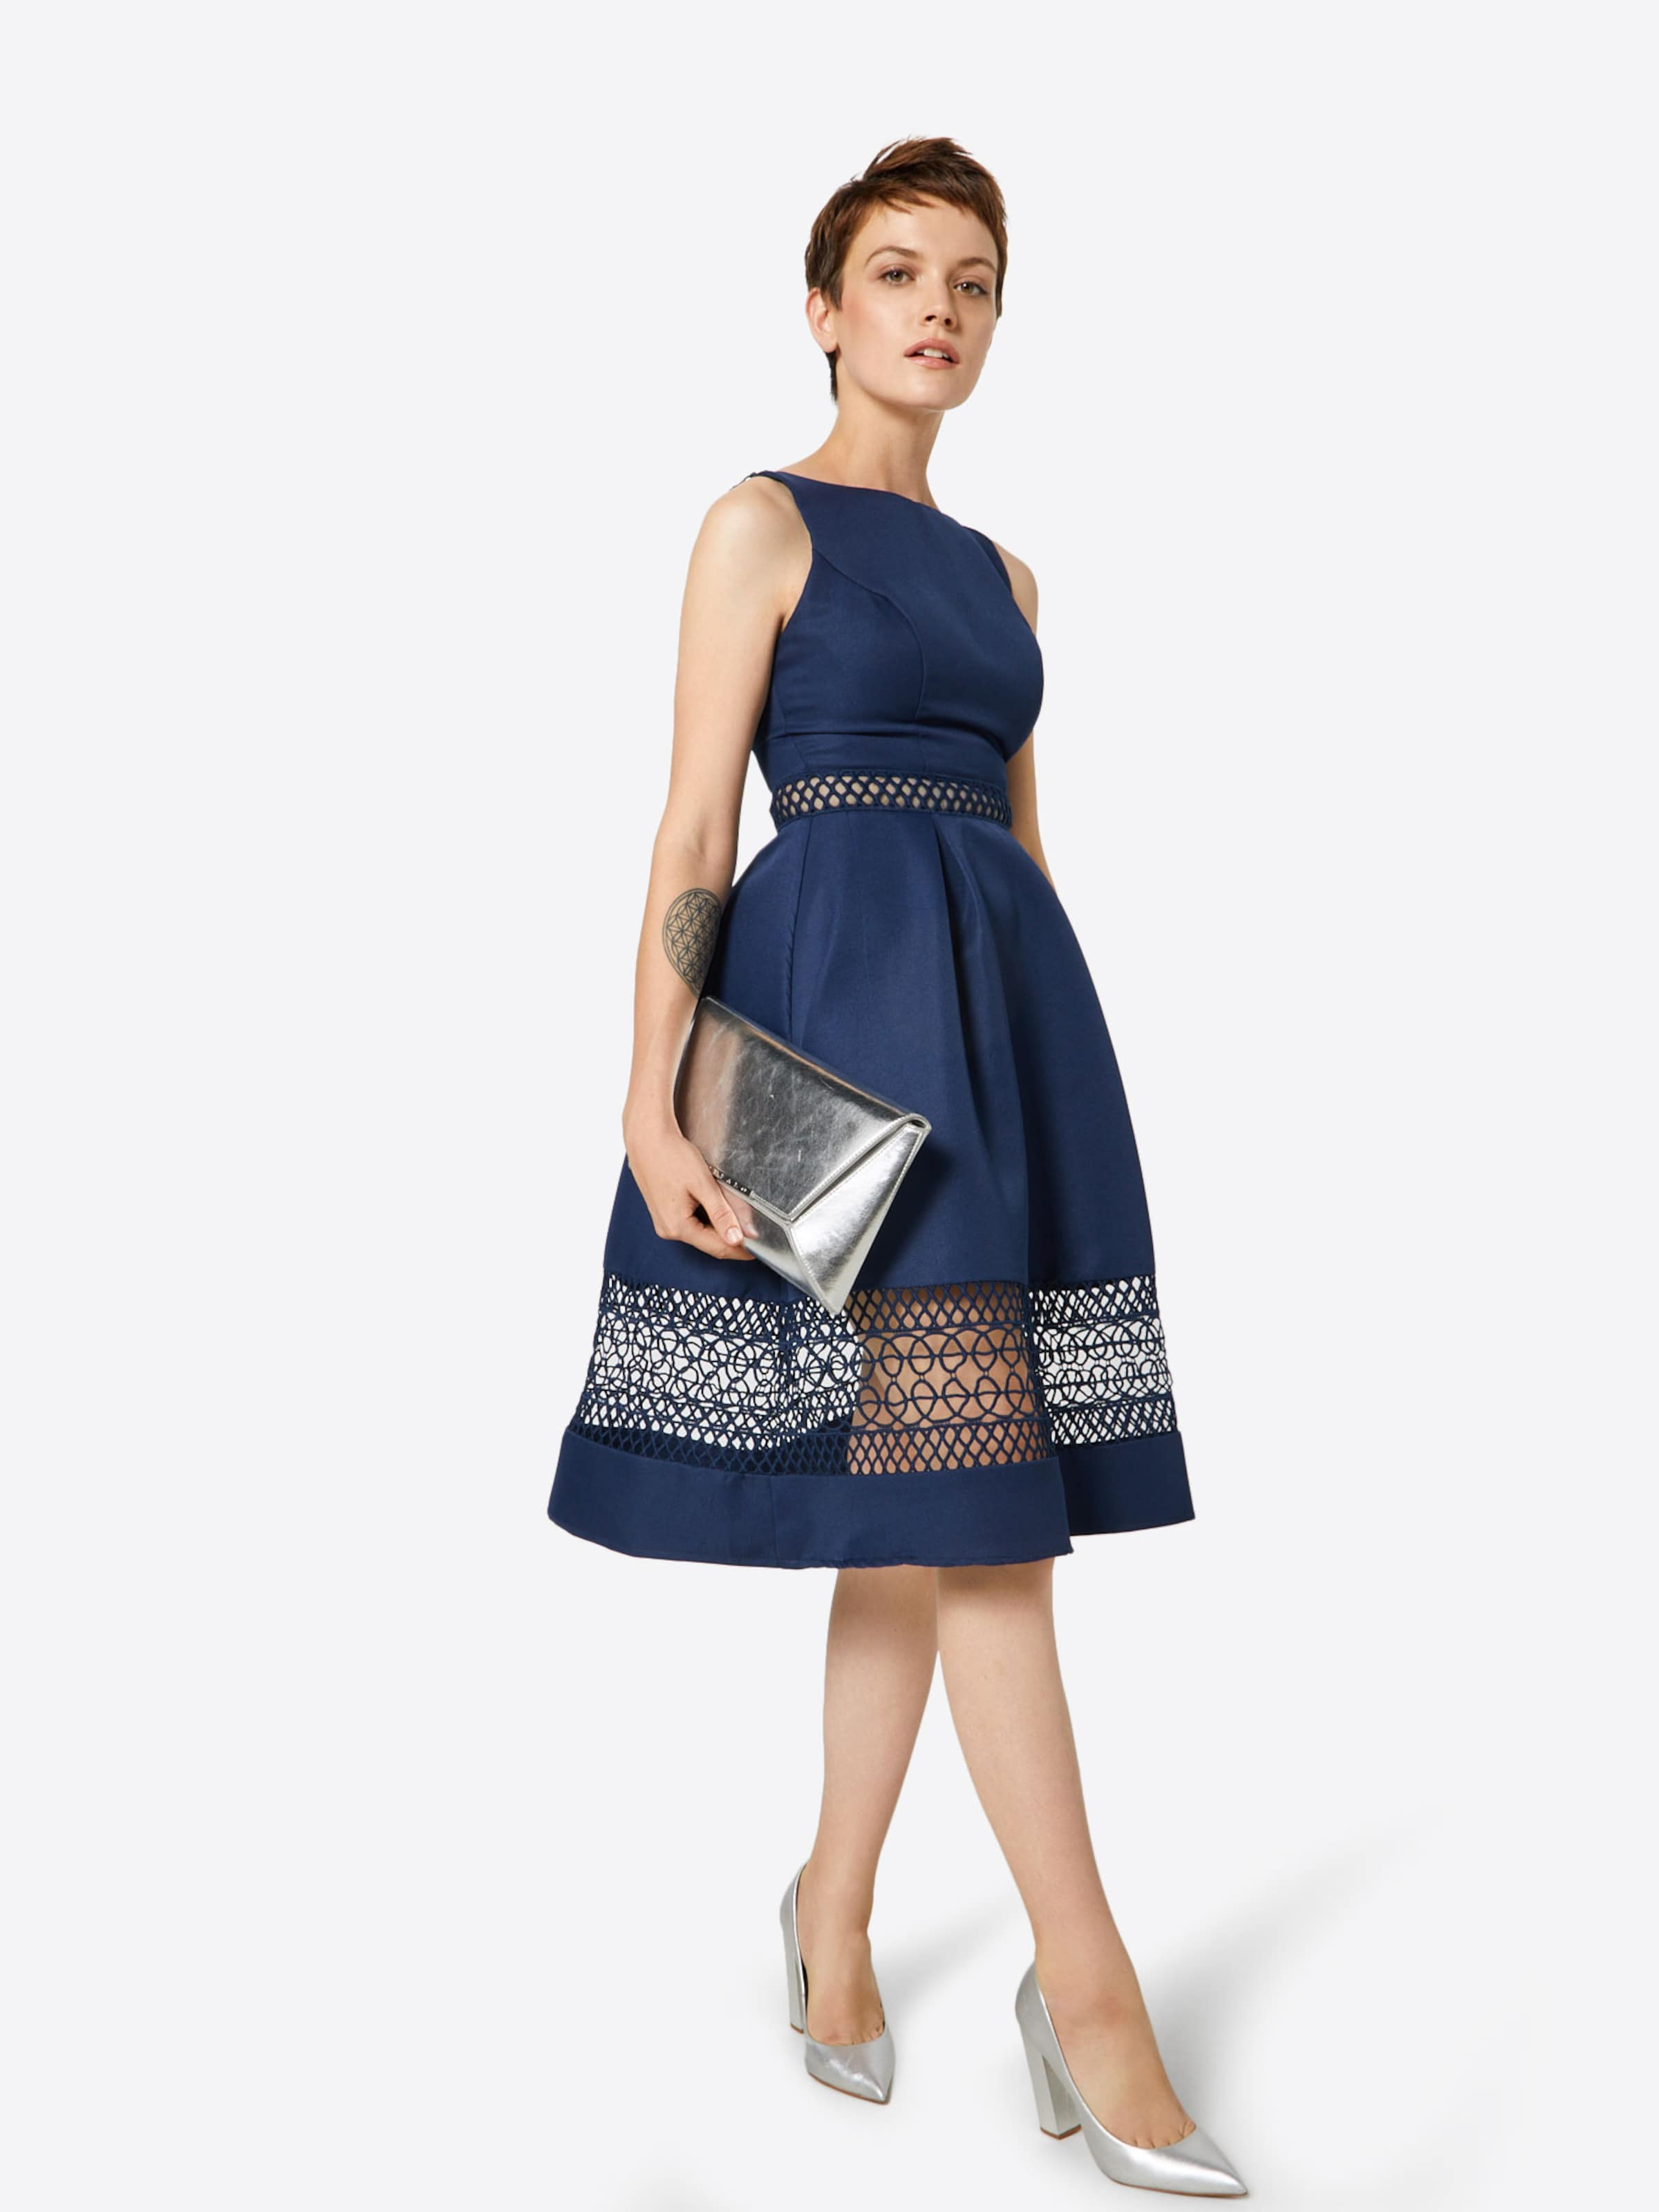 Chi London In In London Cocktailkleid Cocktailkleid Navy Chi ARSc4jLq53